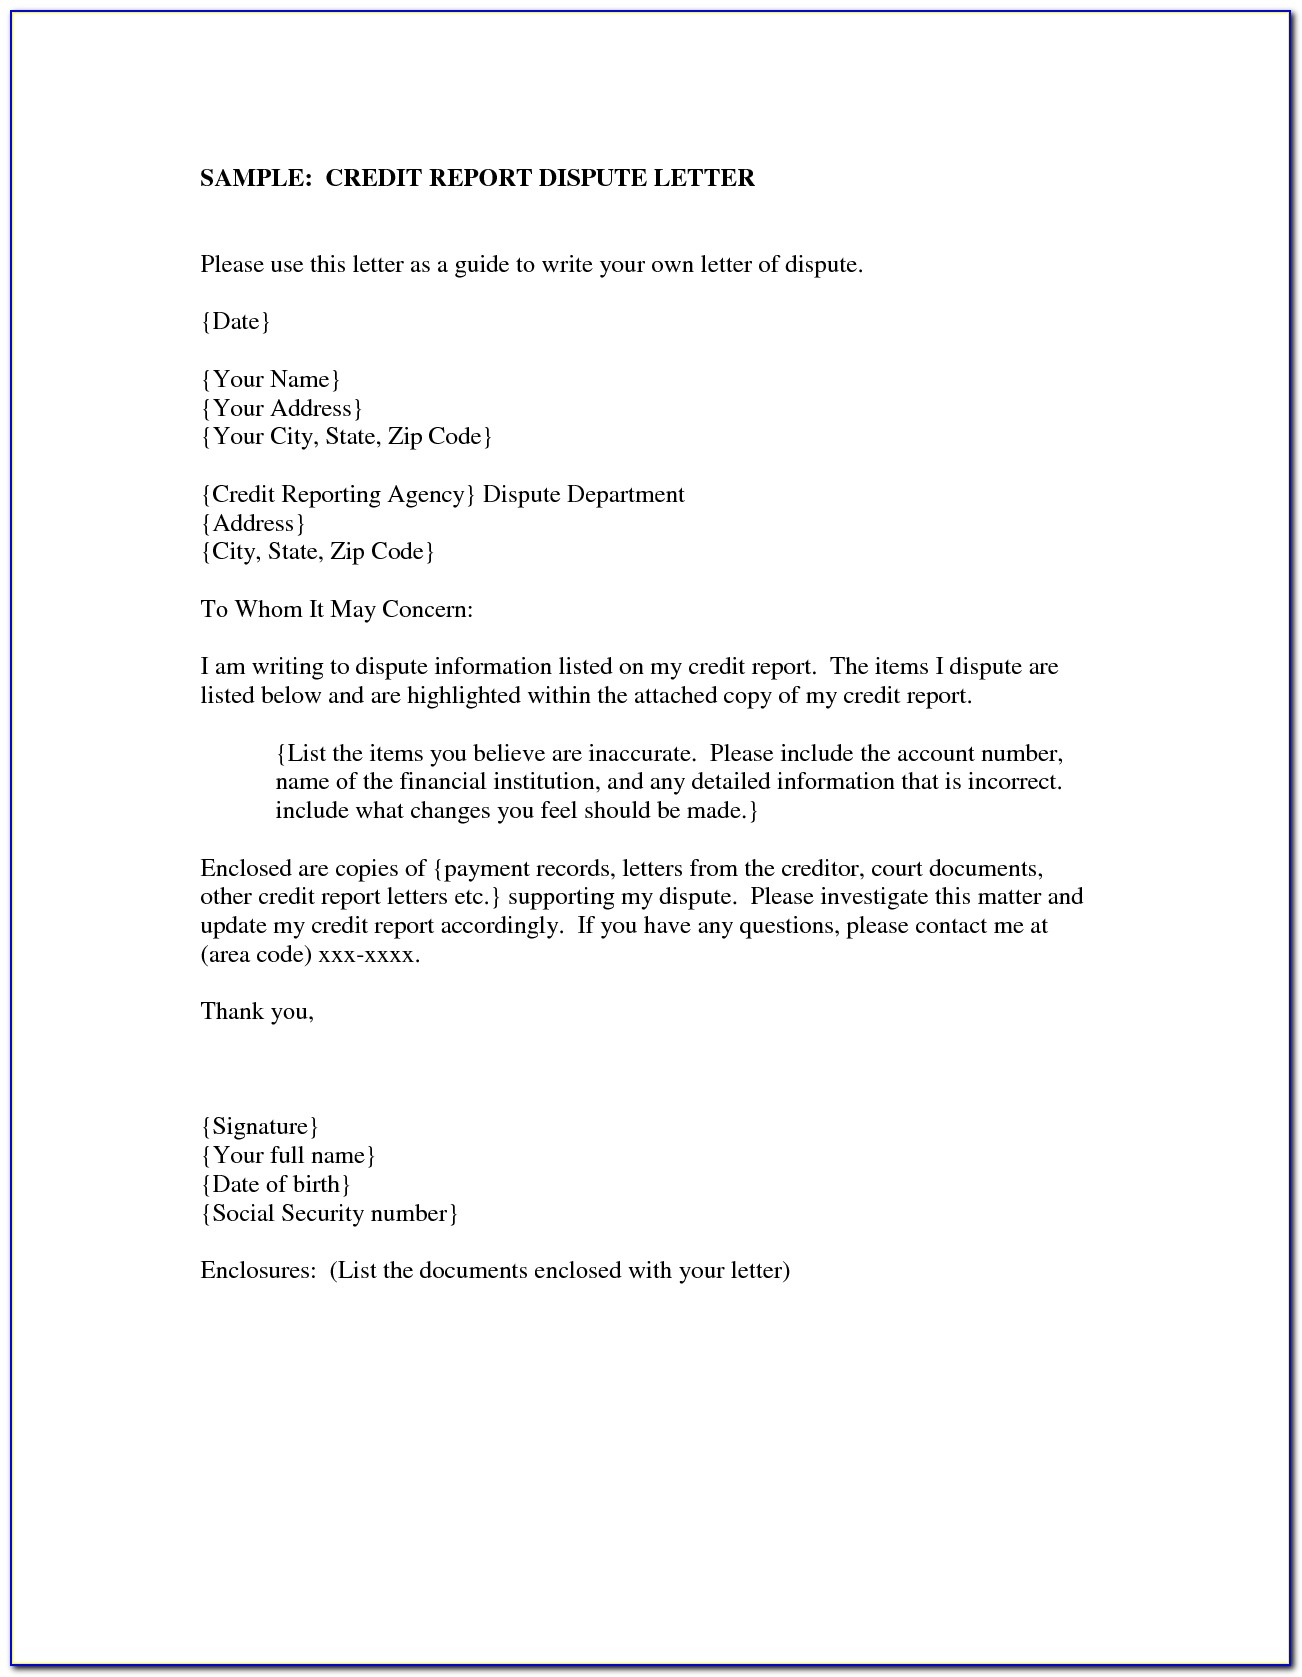 Dispute Credit Report Letter | | Best Business Template For Dispute Credit Report Letter